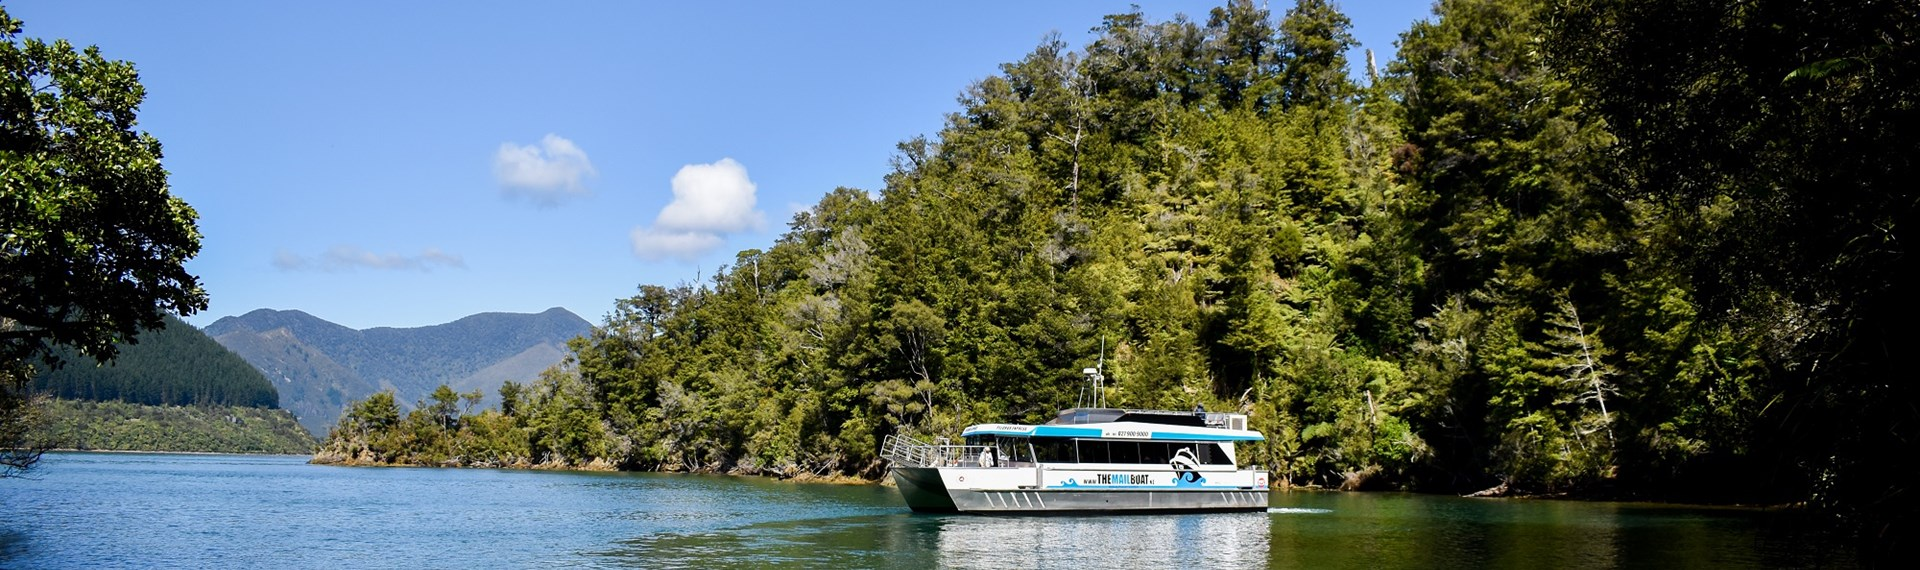 The Pelorus Mail Boat exploring the bays of Pelorus Sound/Te Hoiere.